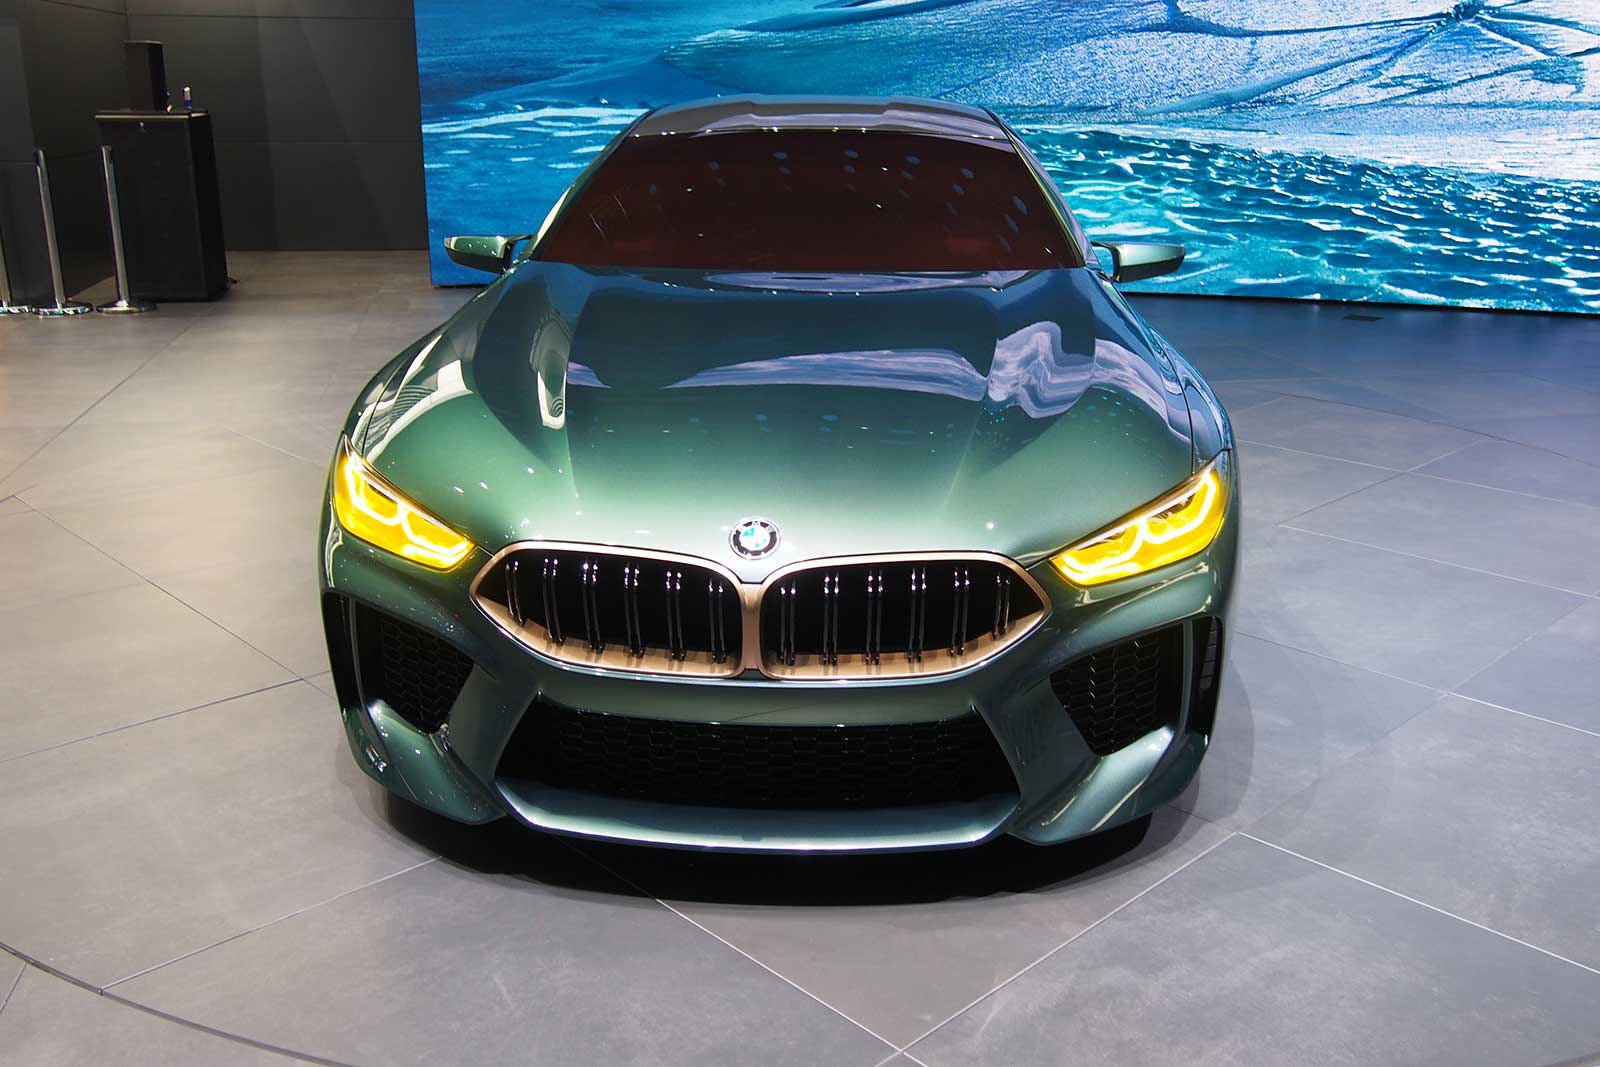 Bmw Concept M8 Gran Coupe A Low And Mean Greenish Gray Flagship